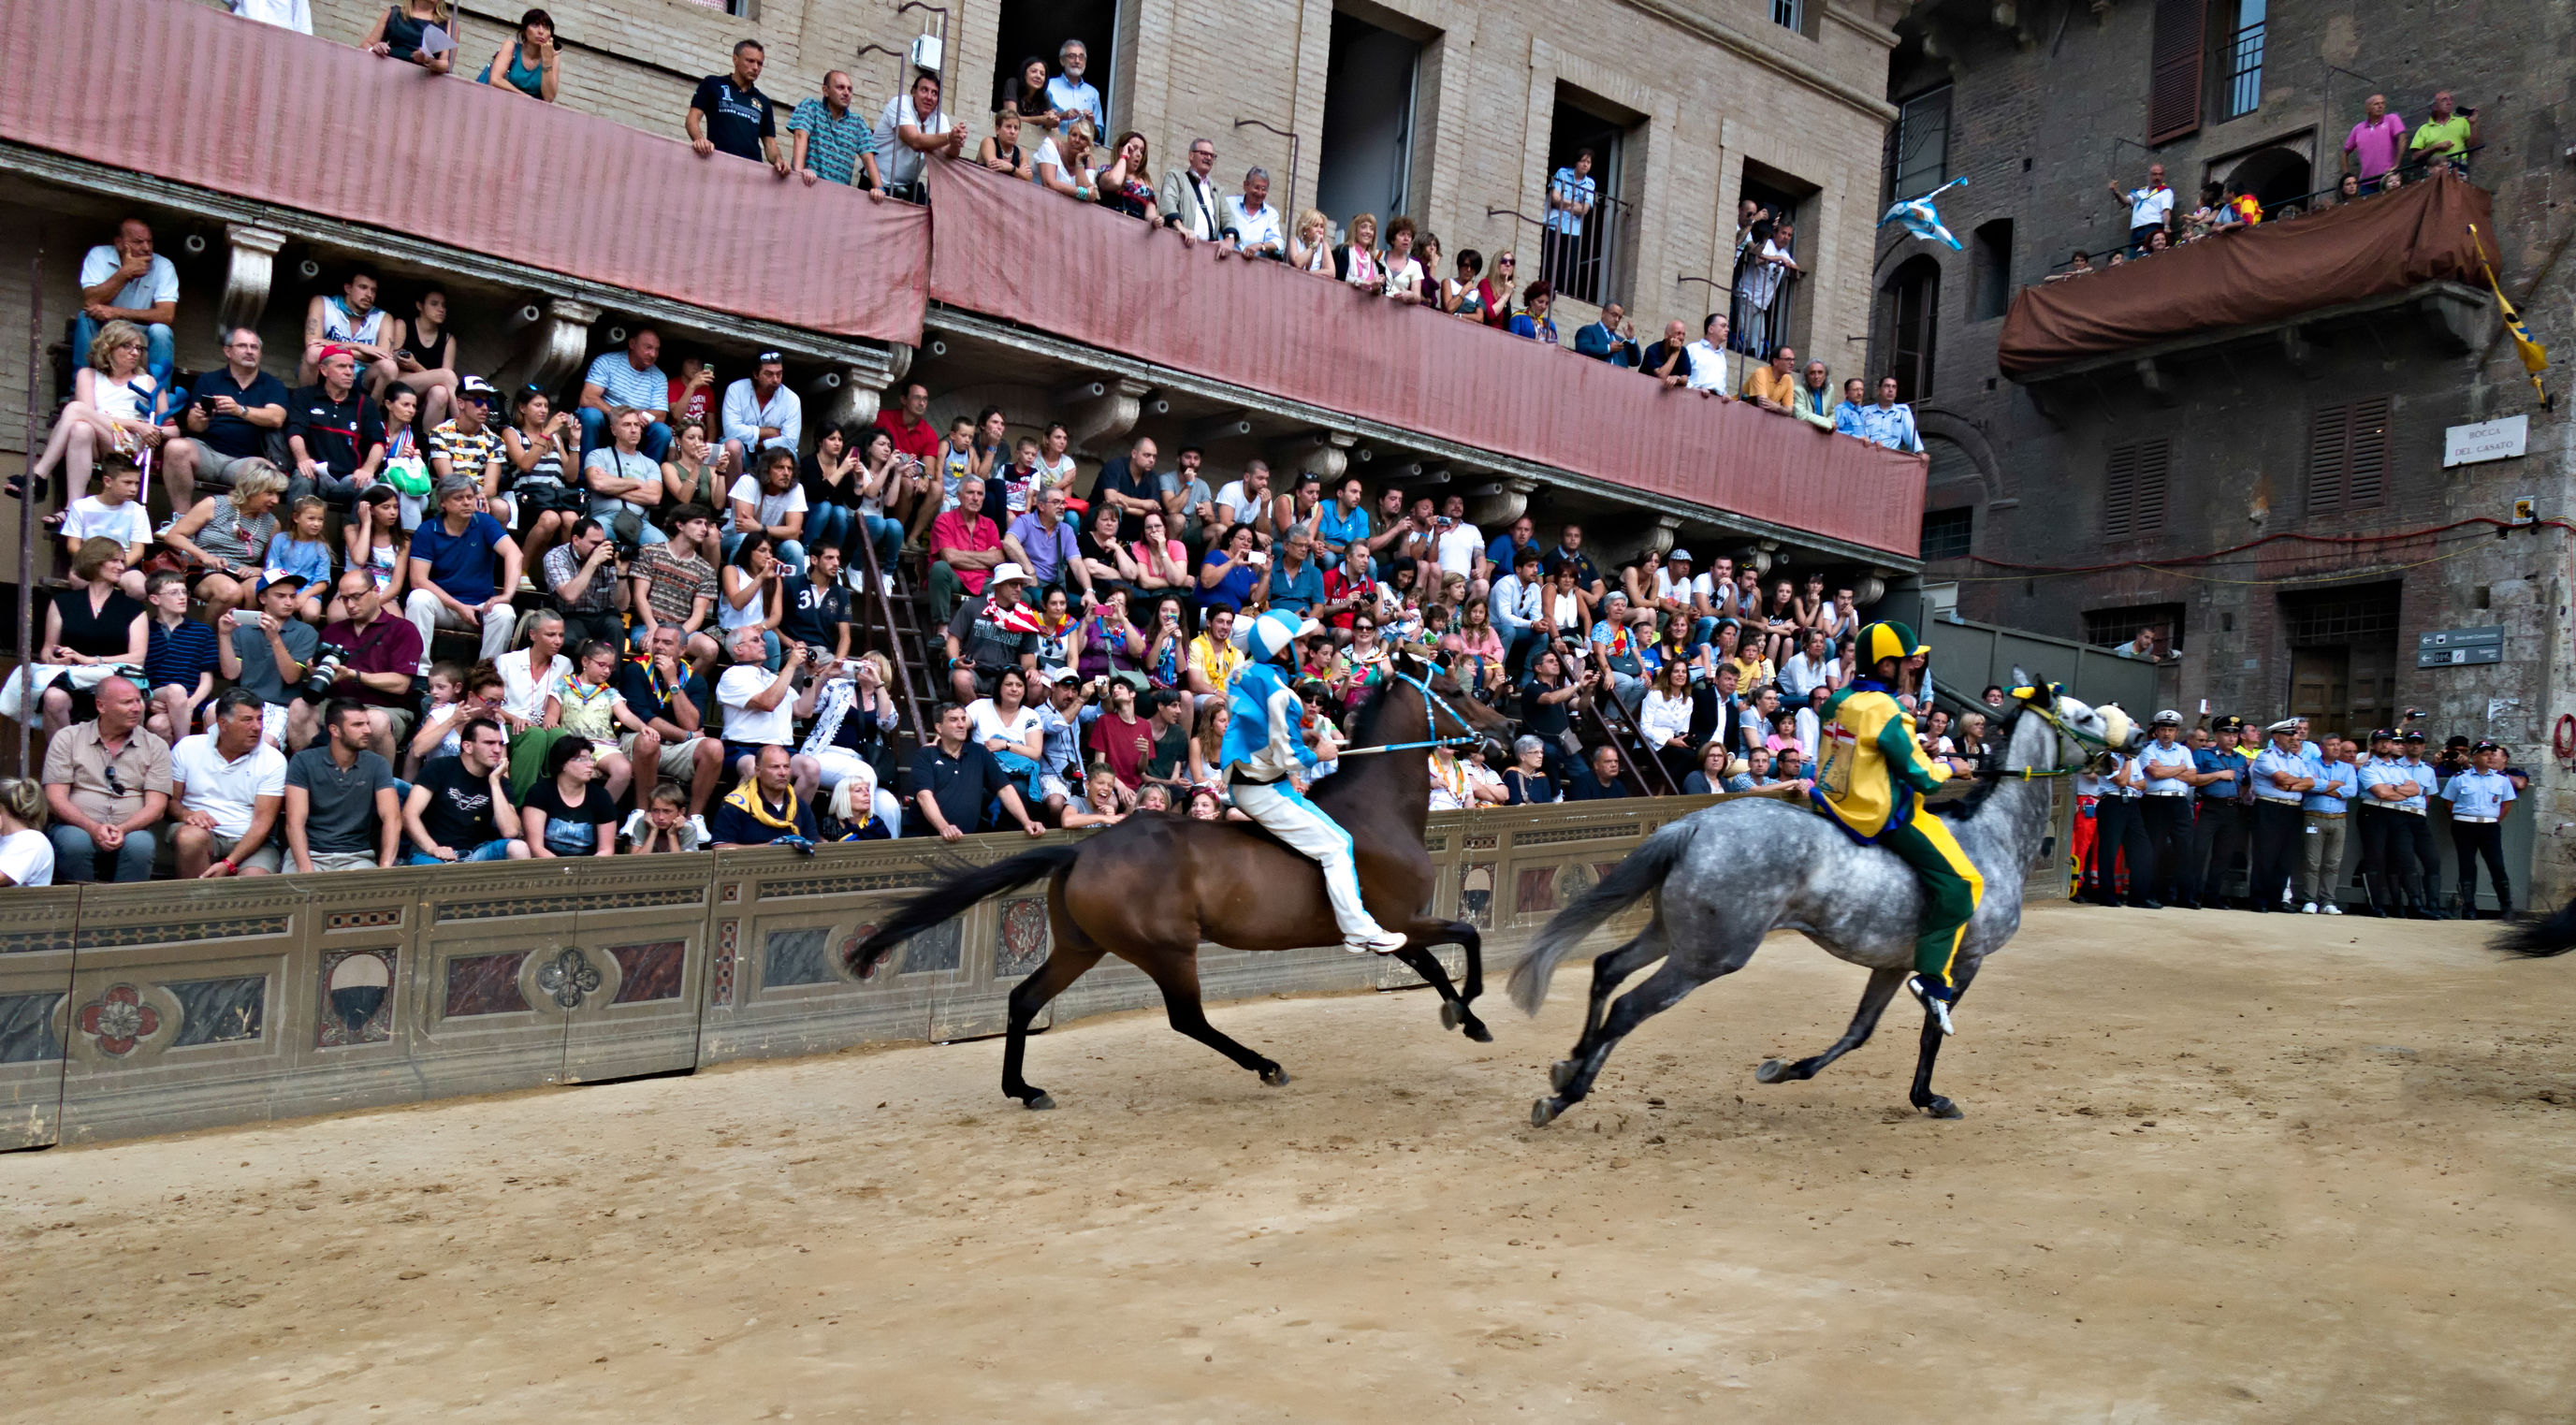 Horses, the Palio of Siena